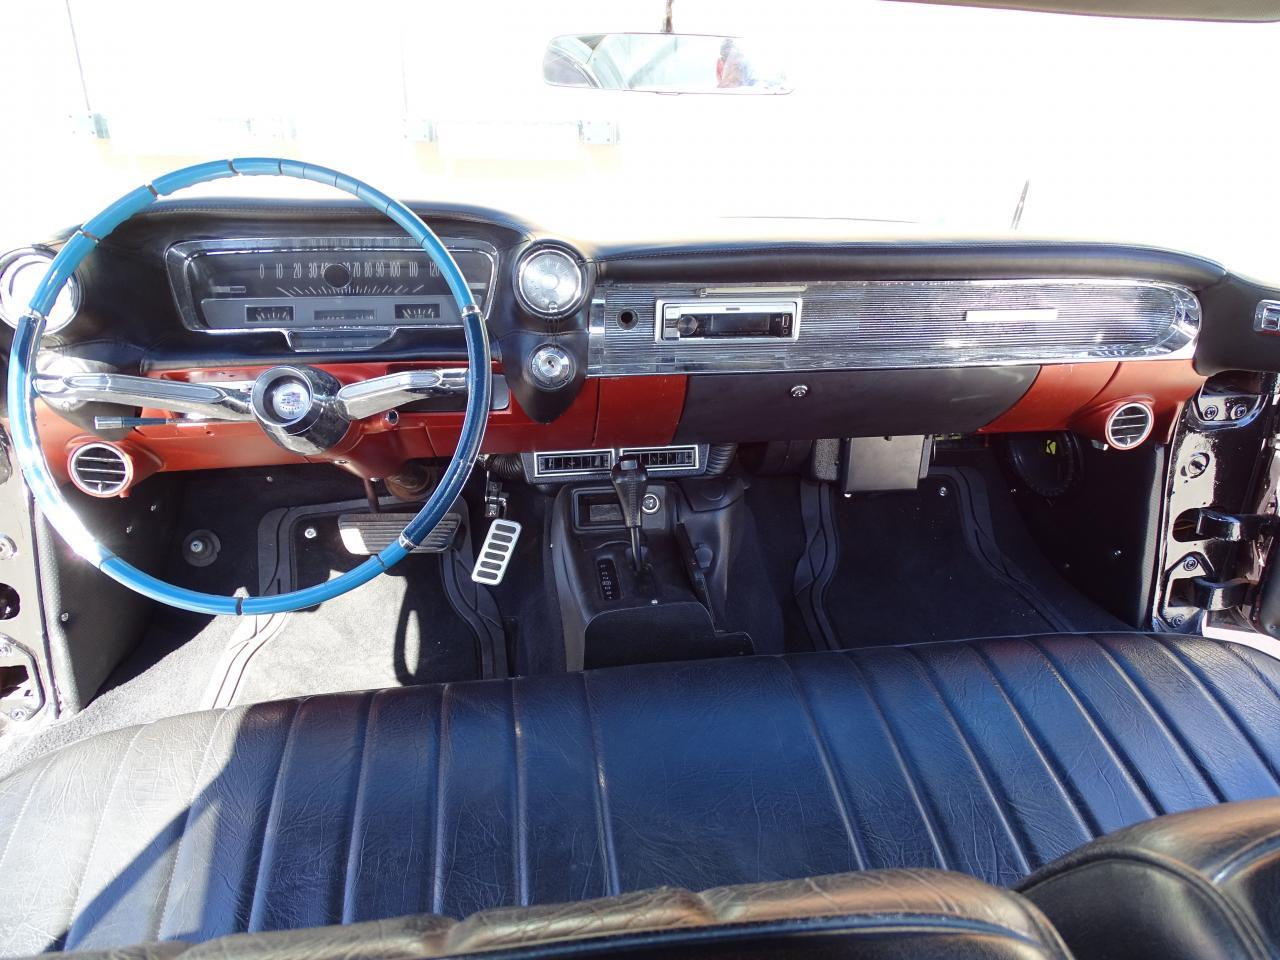 Large Picture of 1960 Cadillac Series 62 located in Arizona - $51,000.00 - MZFH